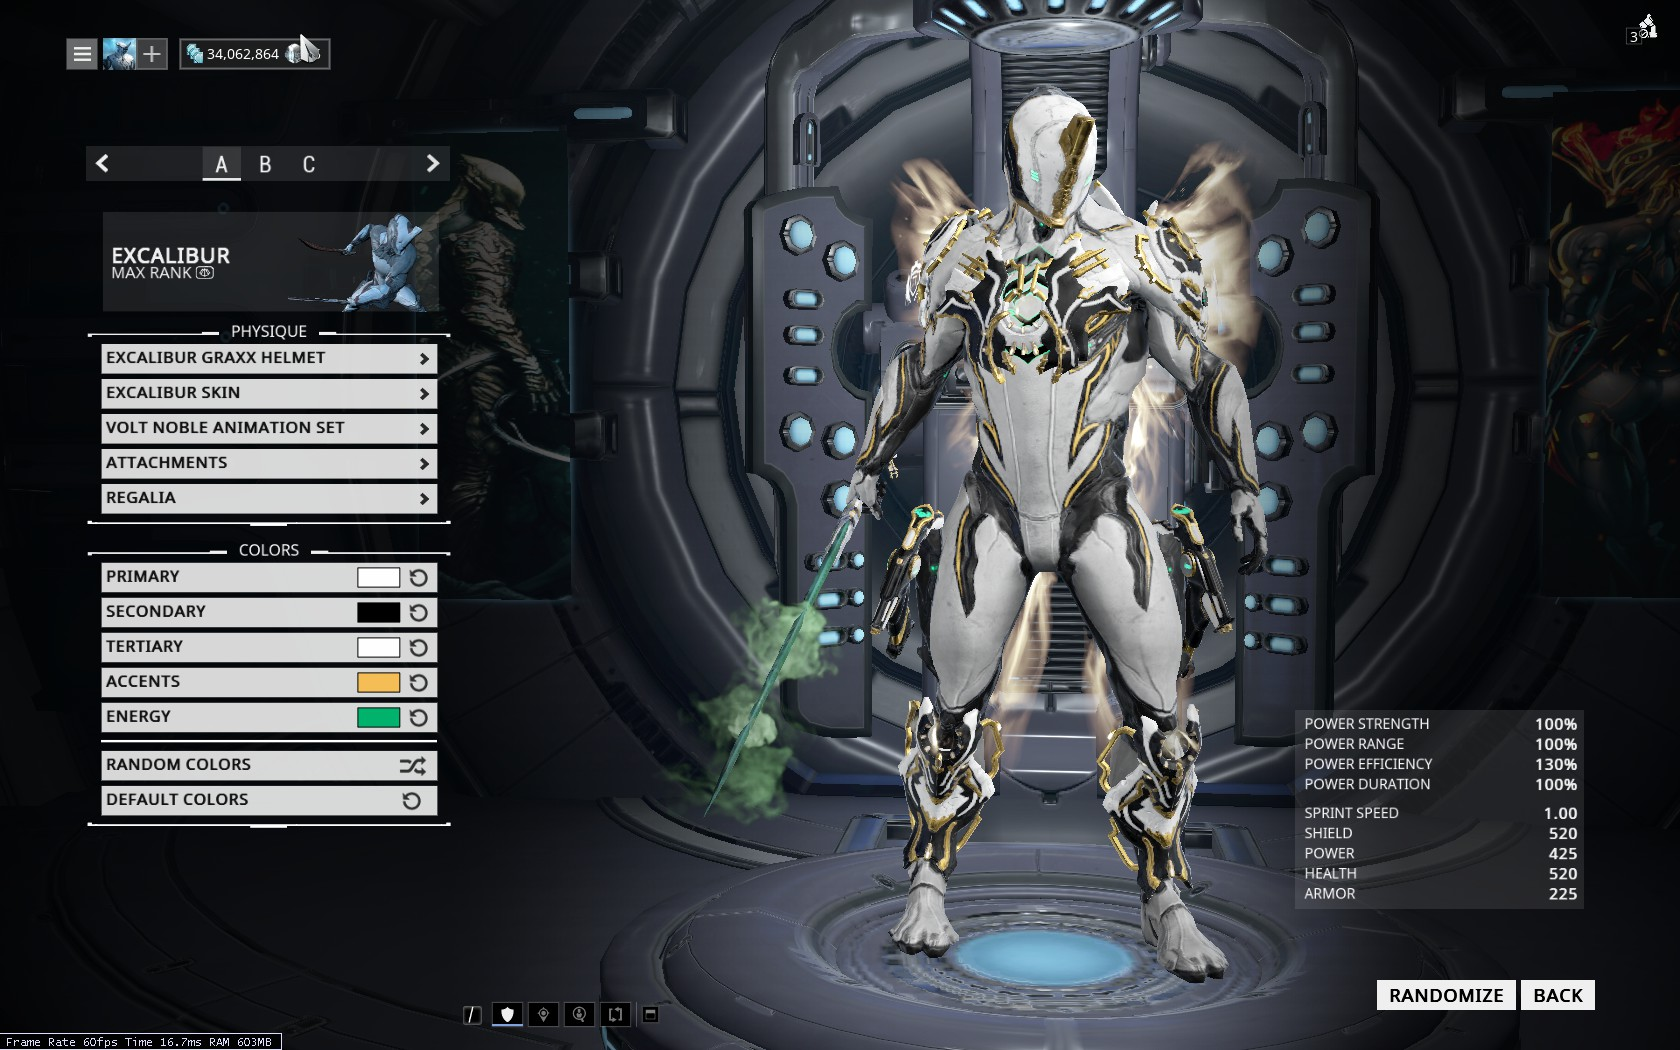 How To Look Like Excalibur Prime